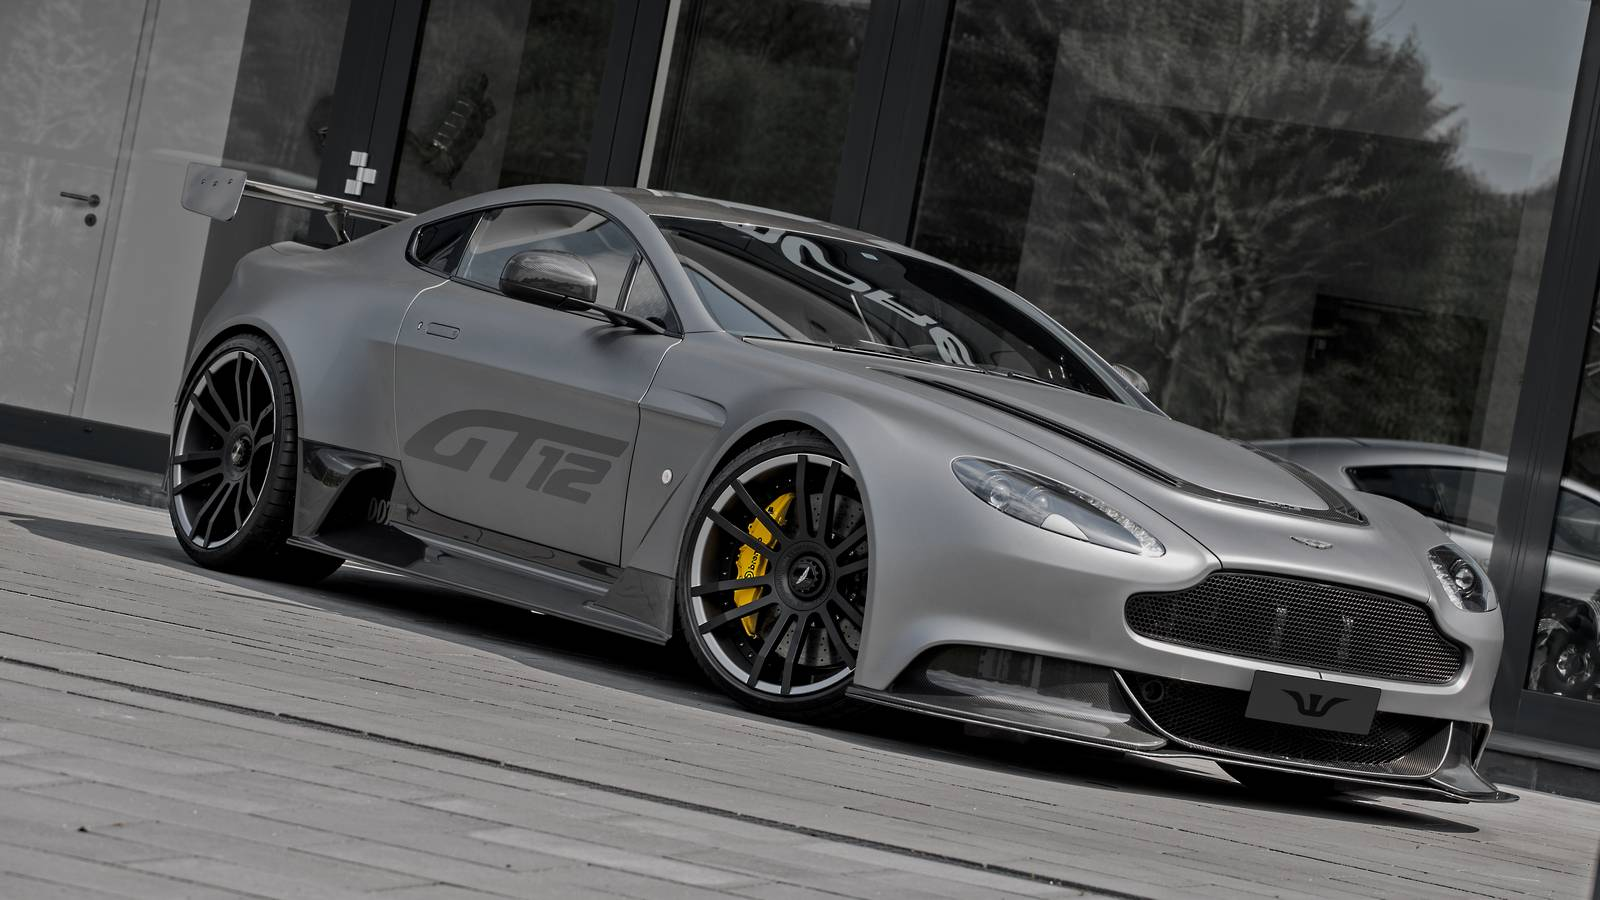 Official Aston Martin Vantage Gt12 By Wheelsandmore